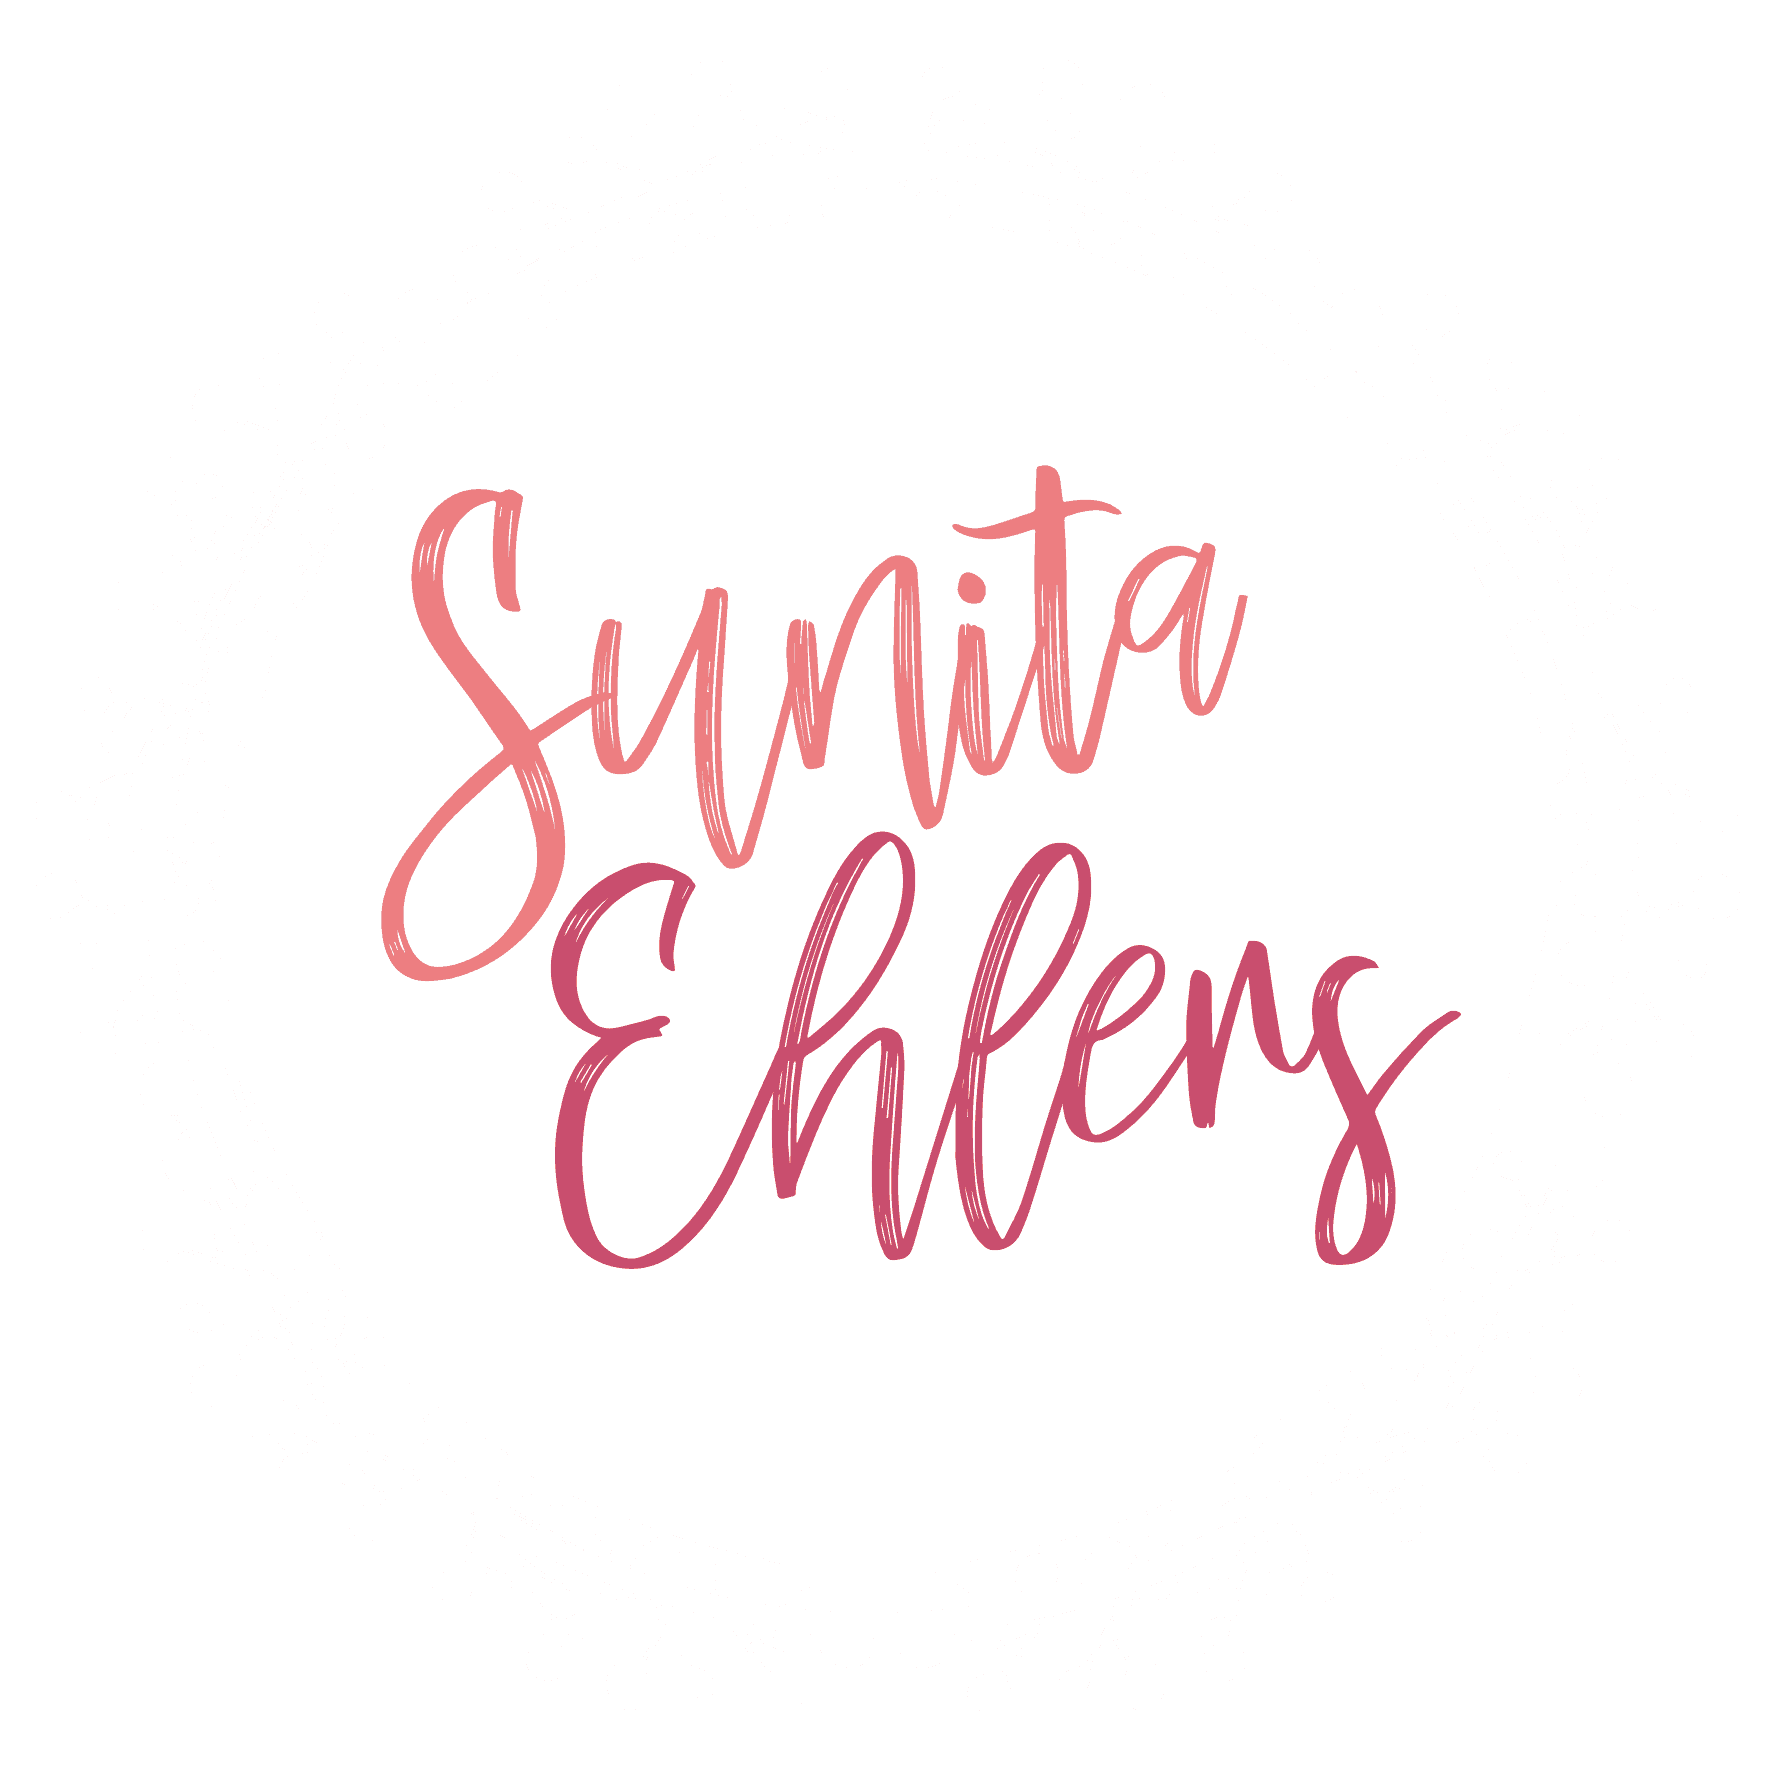 Sunita Ehlers, Ganzheitliche Gesundheit, Yoga, Ayurveda, Mindful Lifestyle